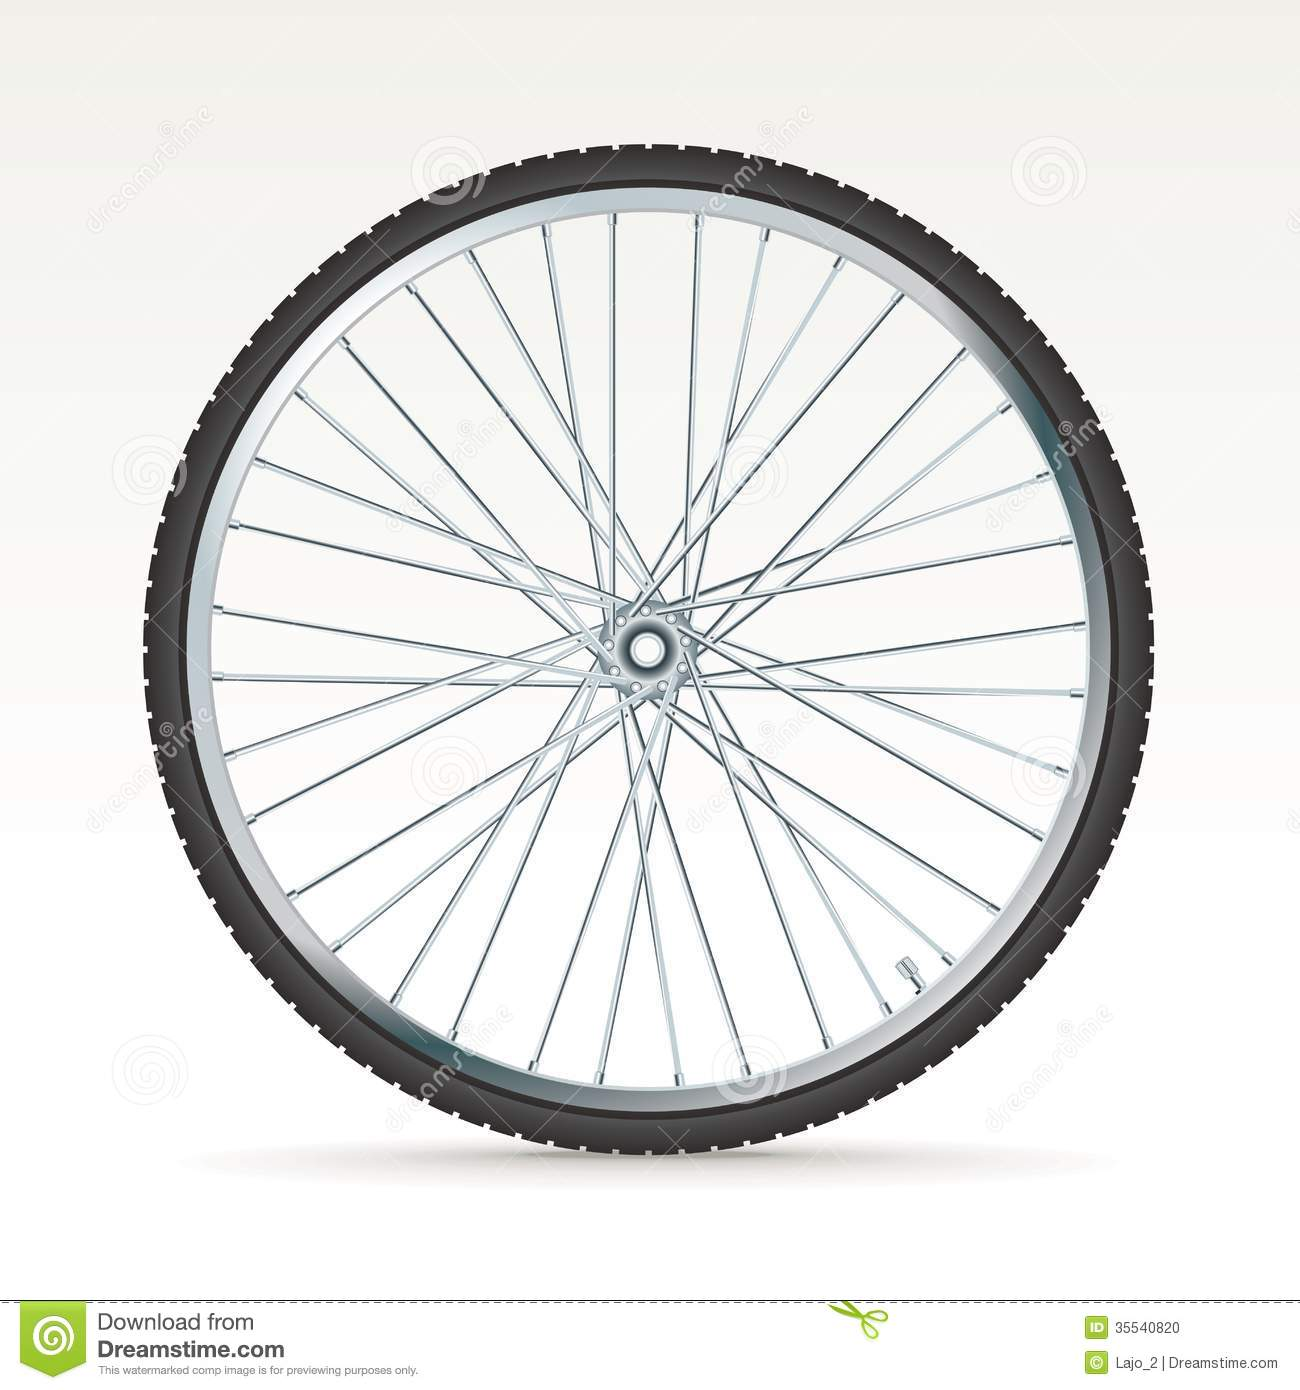 11 Motorcycle Wheel Vector Images